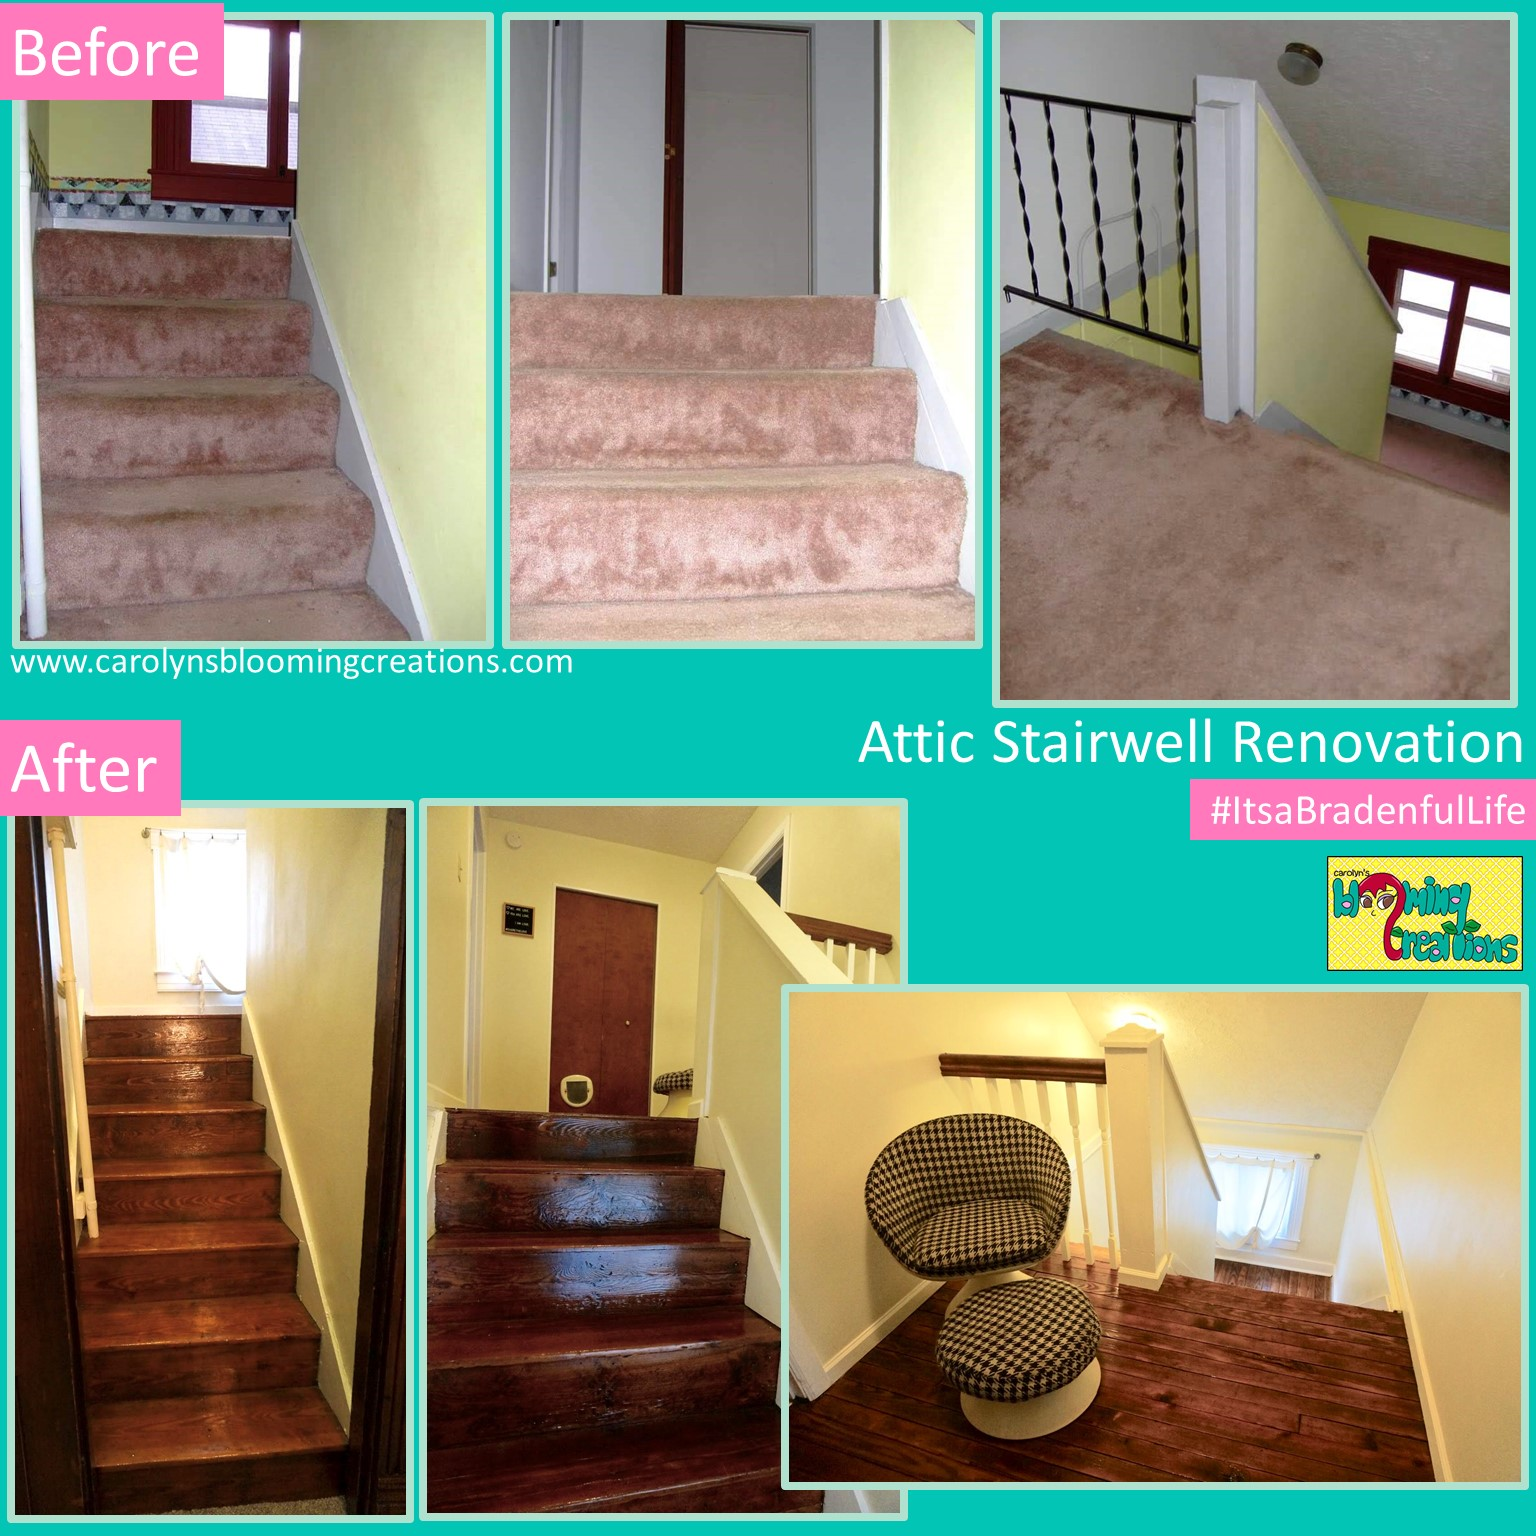 1800's Attic Stairwell Renovation by Tommy and Carolyn Braden